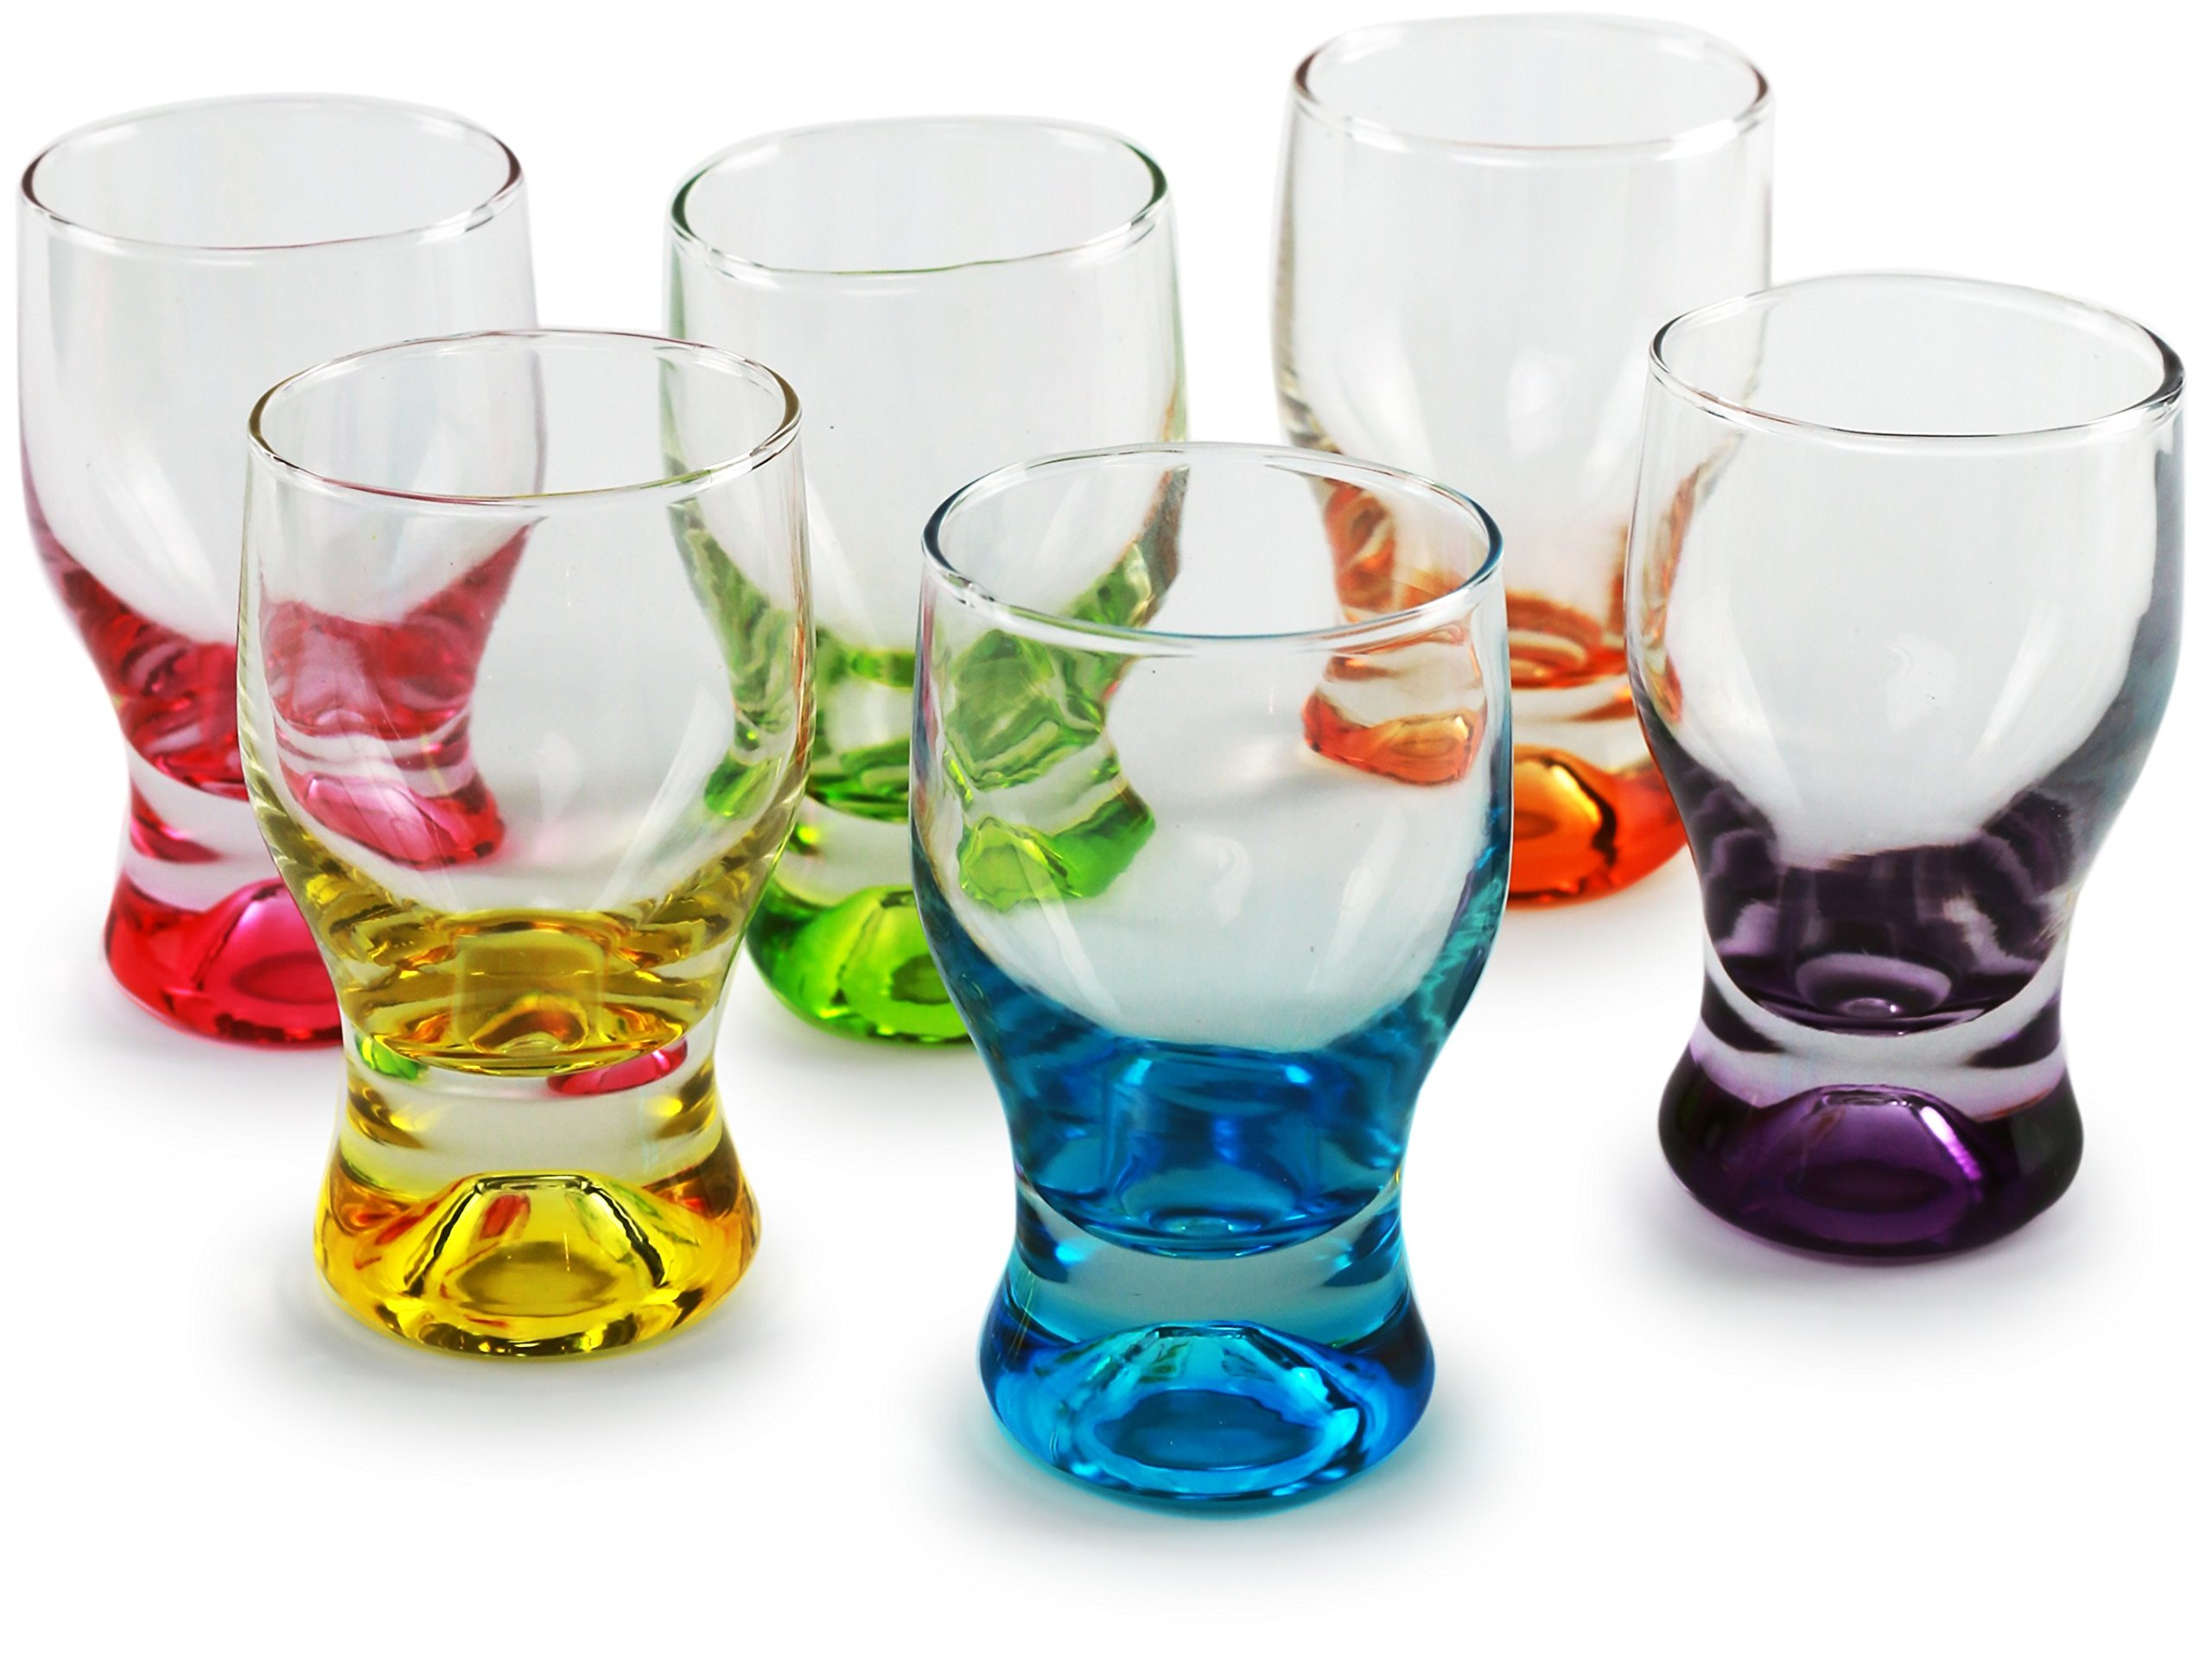 Circleware 42796 Tipsy Shot Glasses, Set of 6, 1.7 Ounce, Assorted Colored Bottoms Limited Edition Drinking Cups for Whiskey, Vodka, Brandy, Bourbon and All Types of Beverage